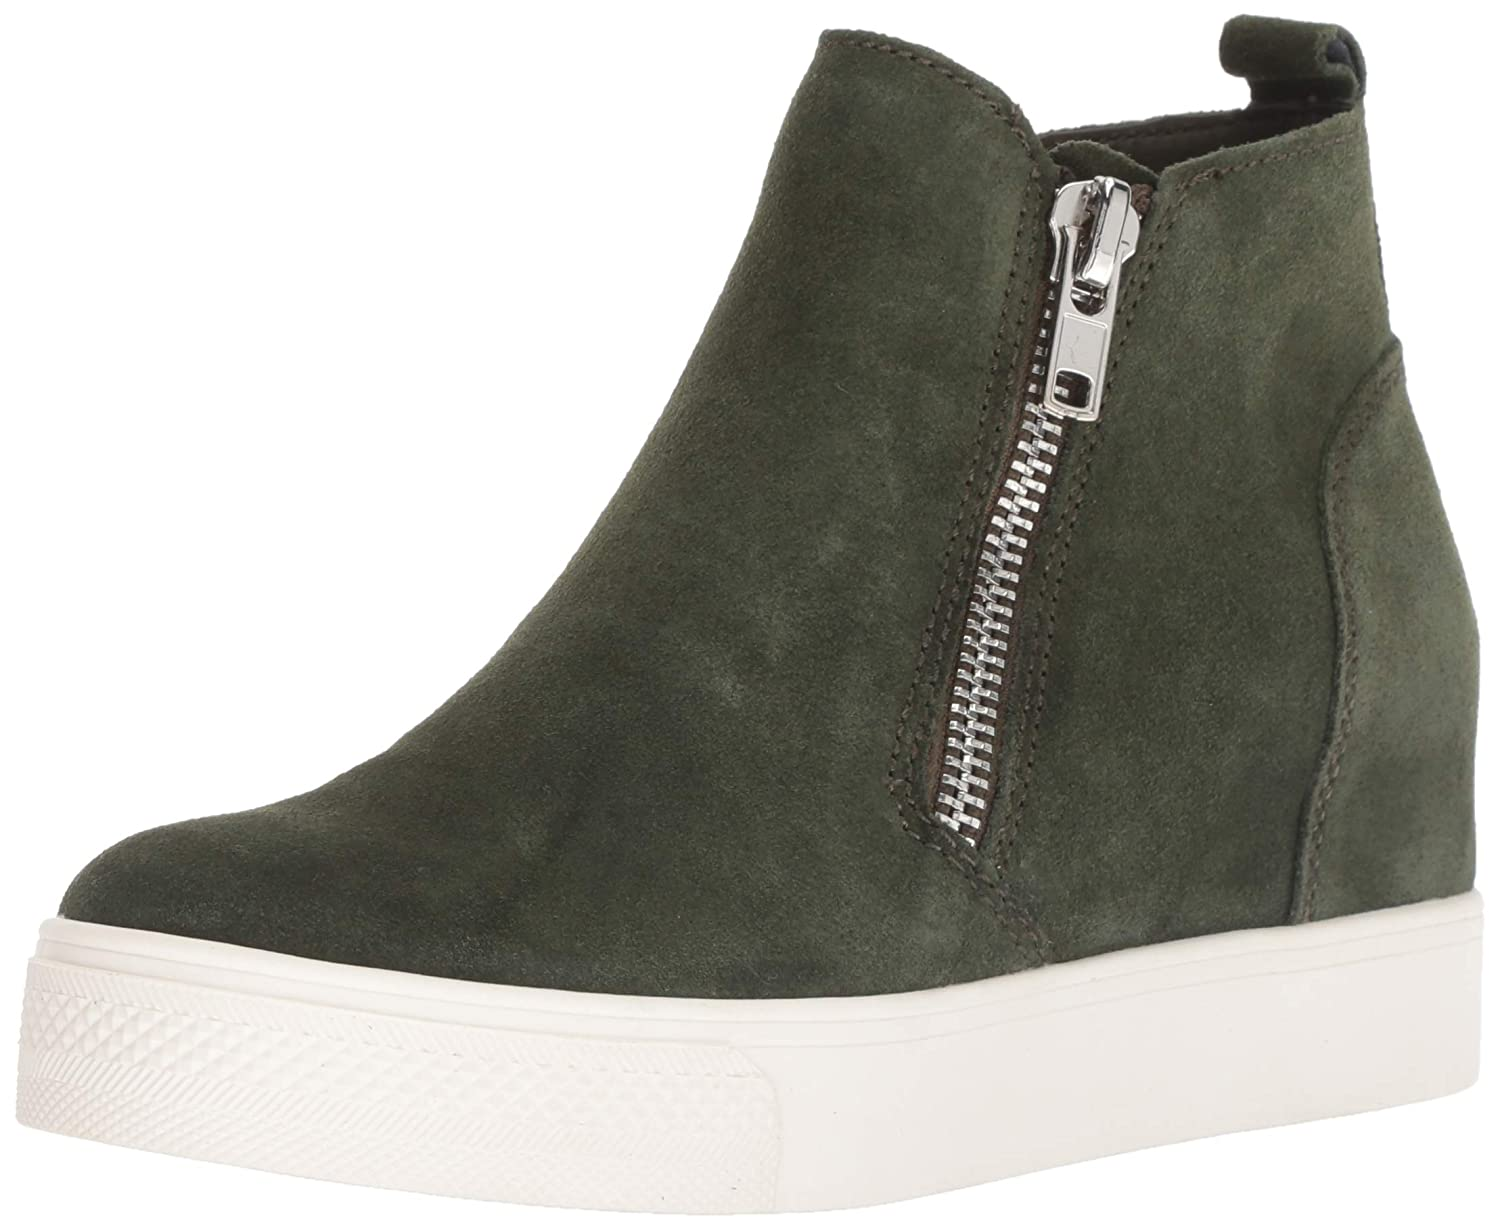 a4dd6c67654 Steve Madden Women's's Wedgie Sneaker: Amazon.co.uk: Shoes & Bags